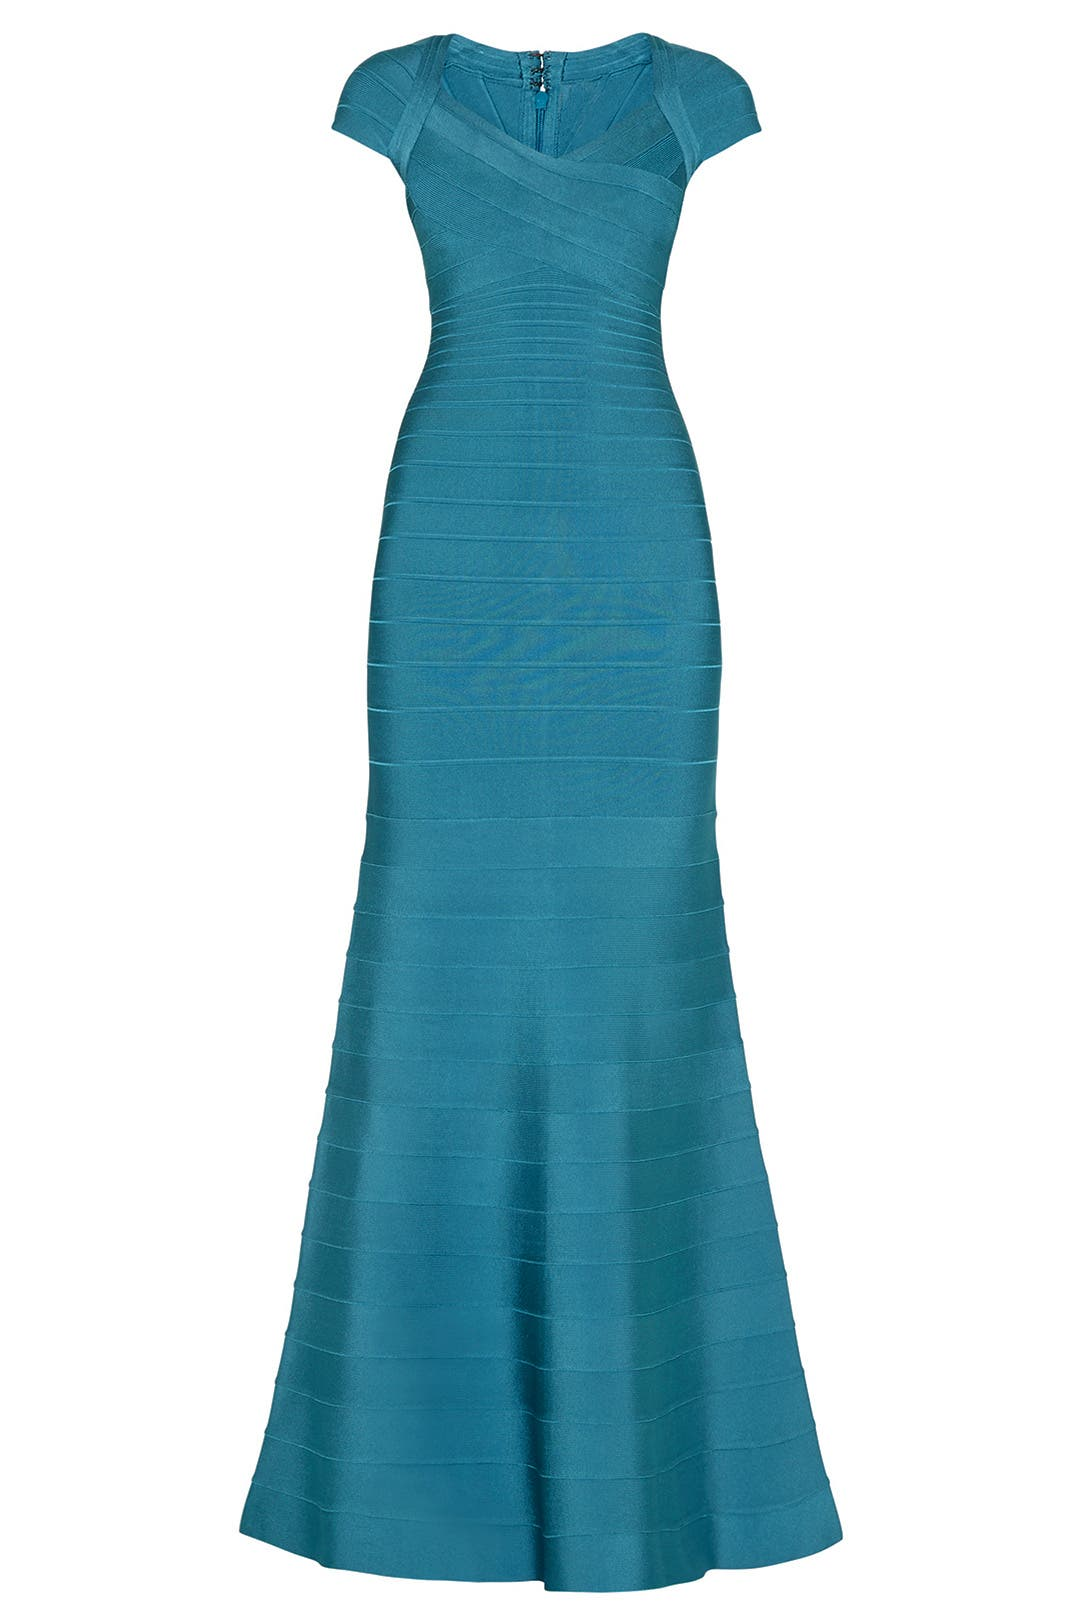 Teal Cap Sleeve Mermaid Gown by Hervé Léger for $225 | Rent the Runway